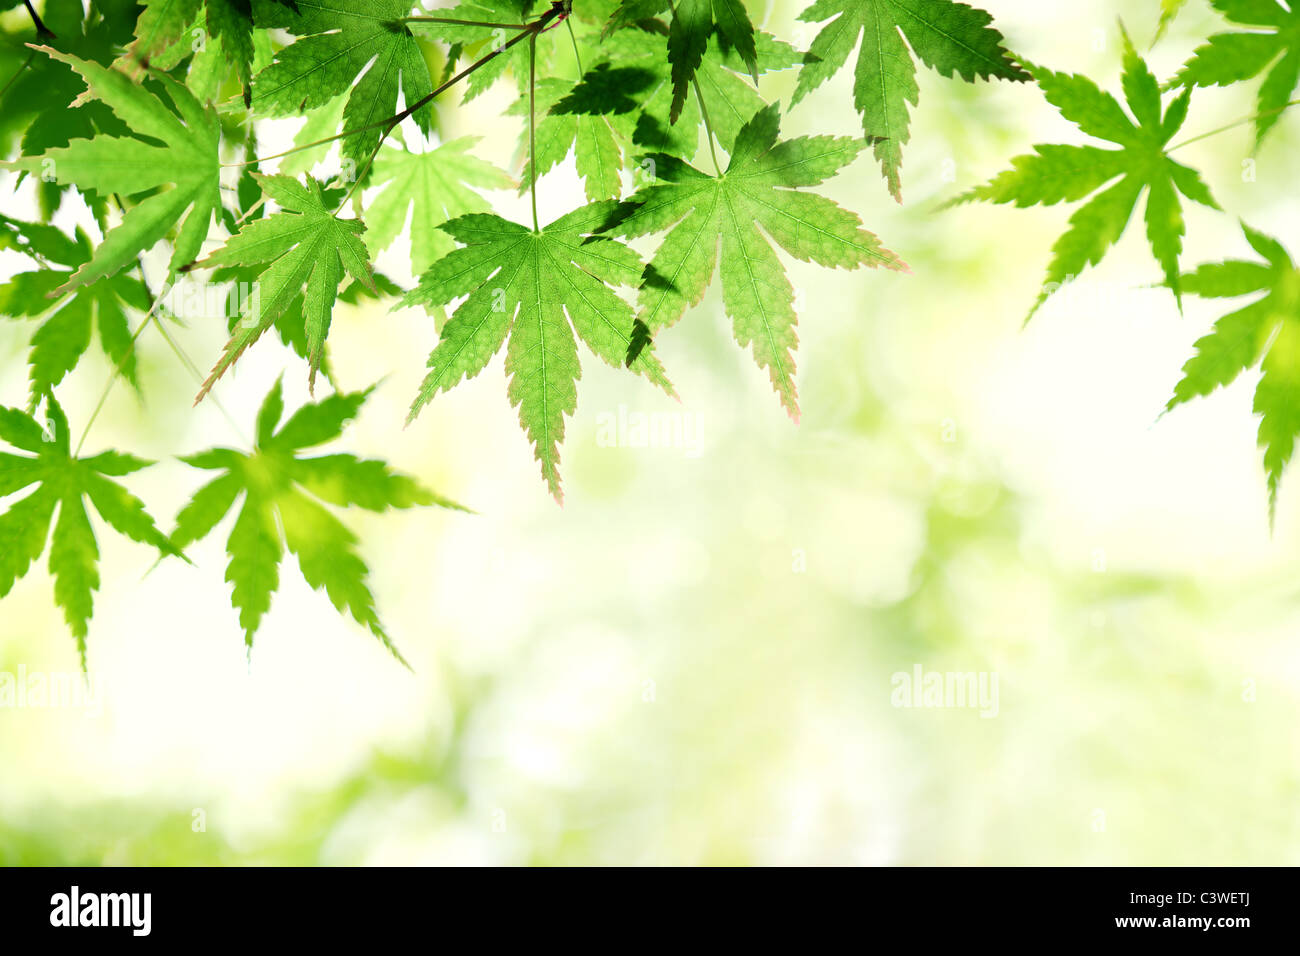 Green maple leaf in sunny day - Stock Image